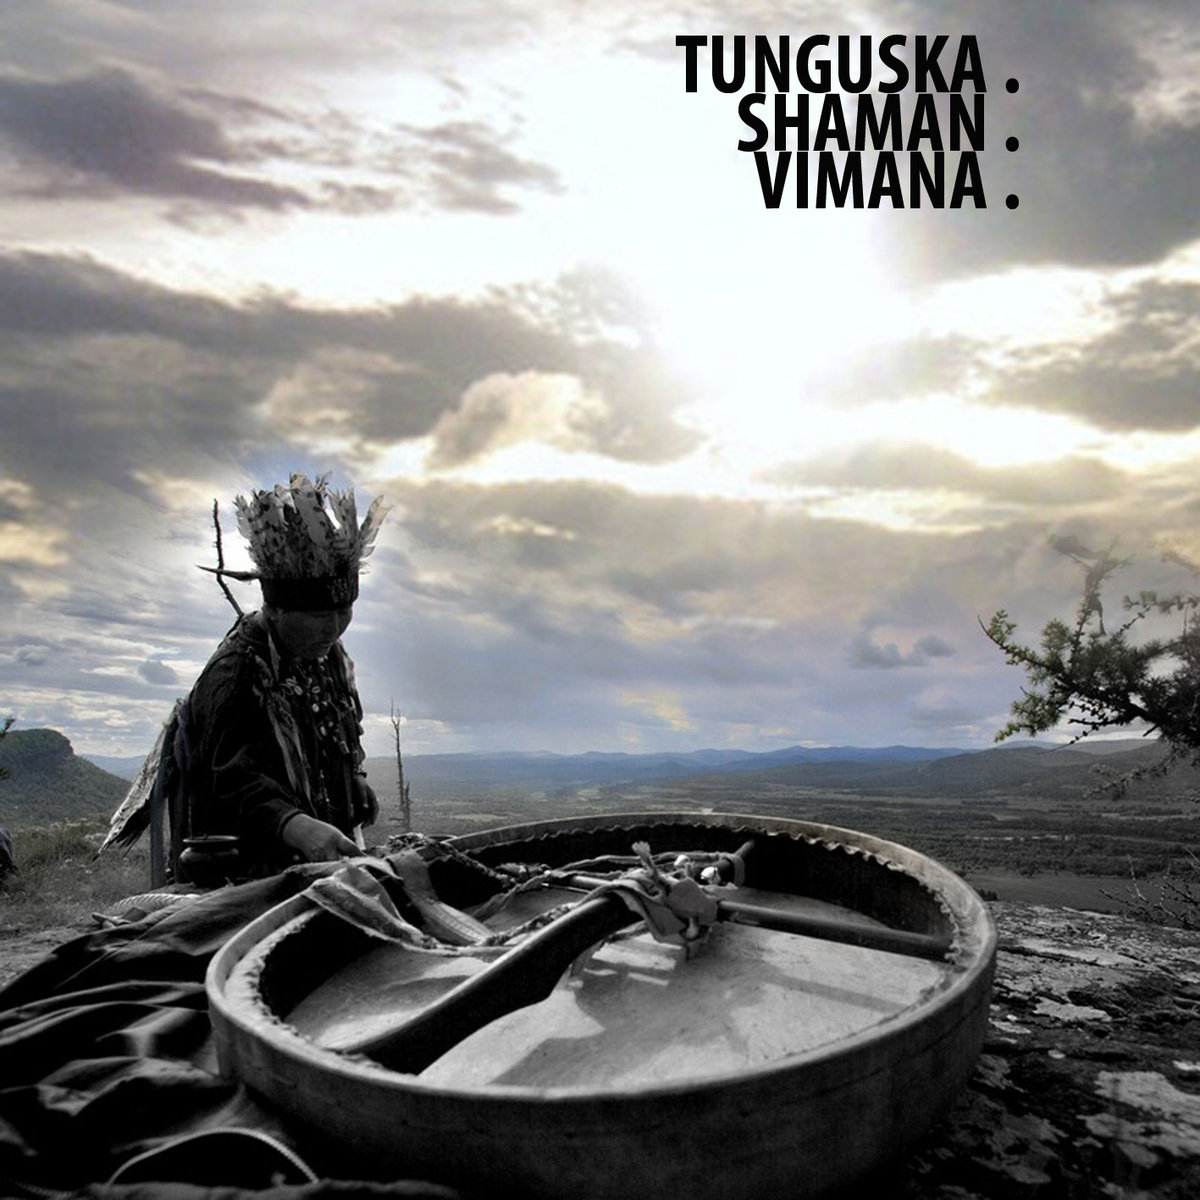 EXIT project - So Simple (Yet So Hard) @ 'Ellipsis - Tunguska.Shaman.Vimana.' album (electronic, ambient)